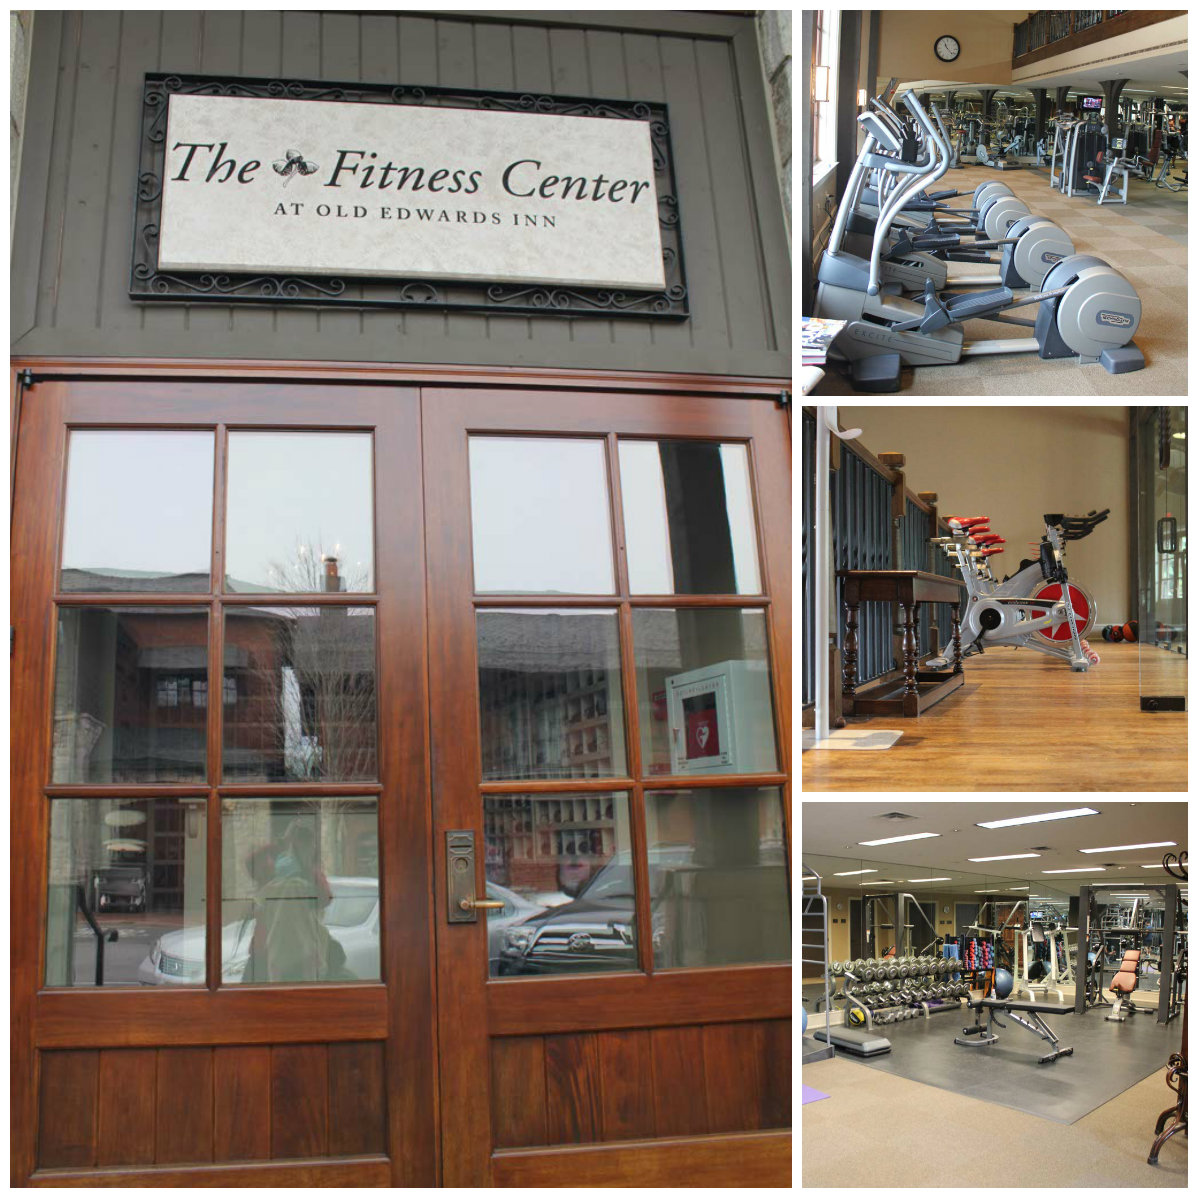 Old Edwards Inn Fitness Center